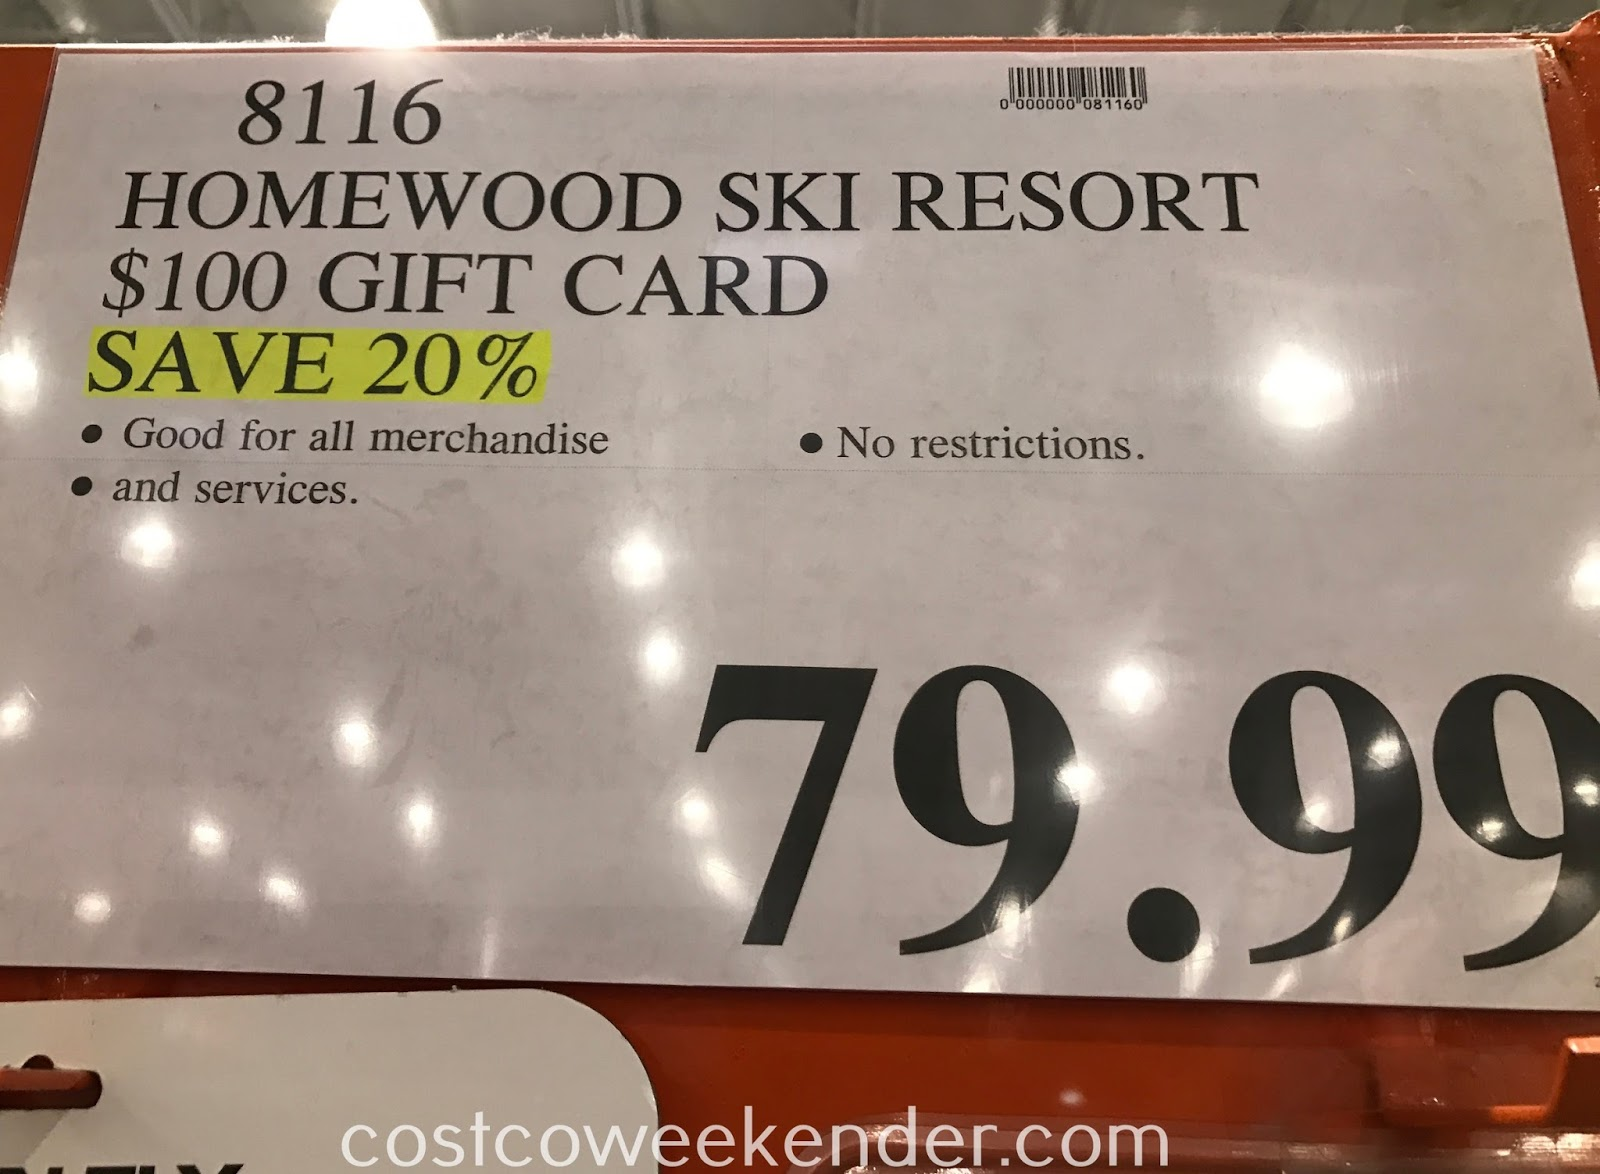 Costco 8116 - Deal for a $100 gift card to Homewood Mountain Ski Resort at Costco